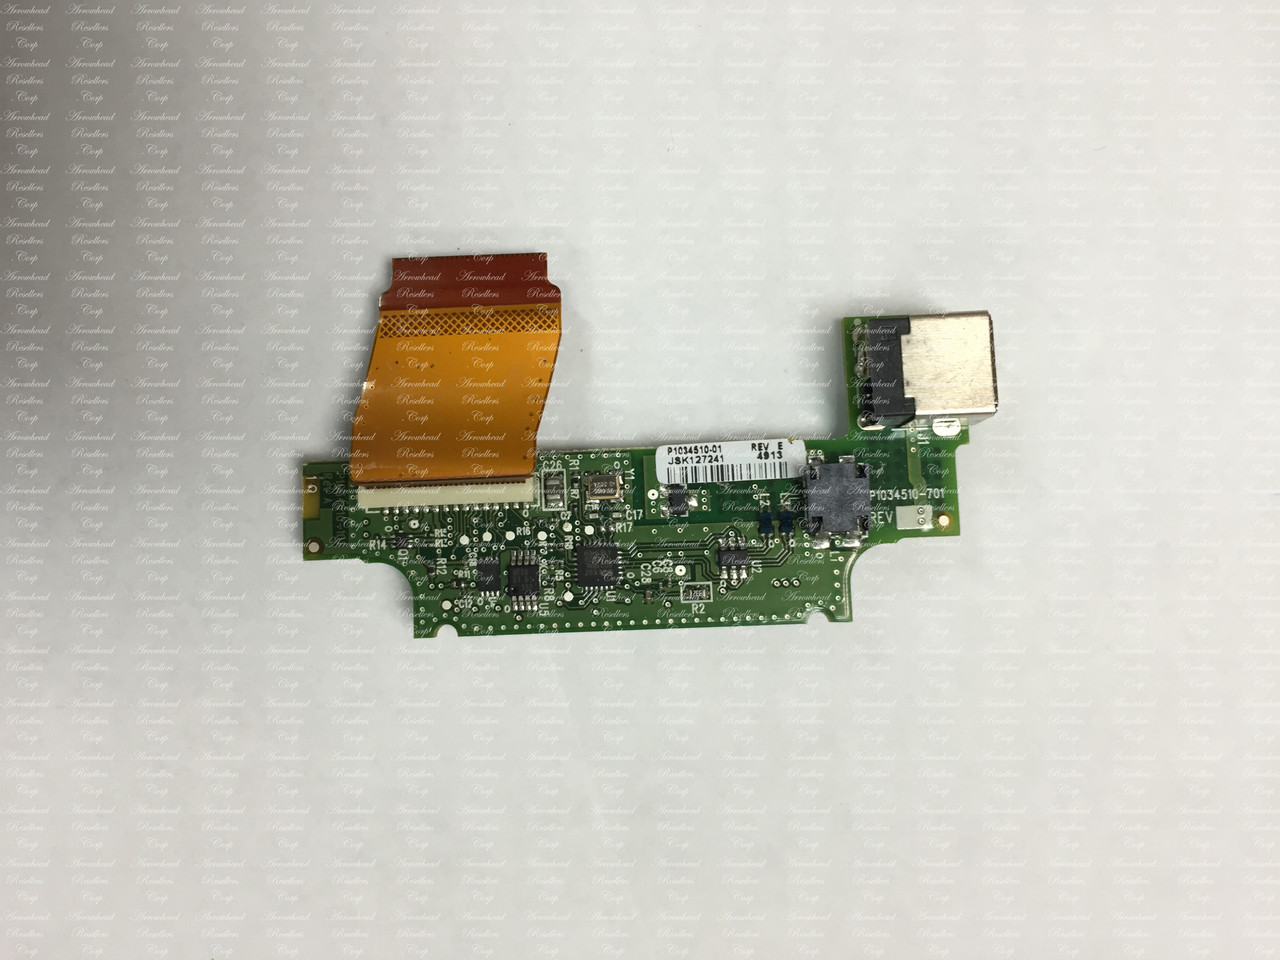 AC Power Board for QLn320 | P1029403-01 | P1029403-01 - Zebra